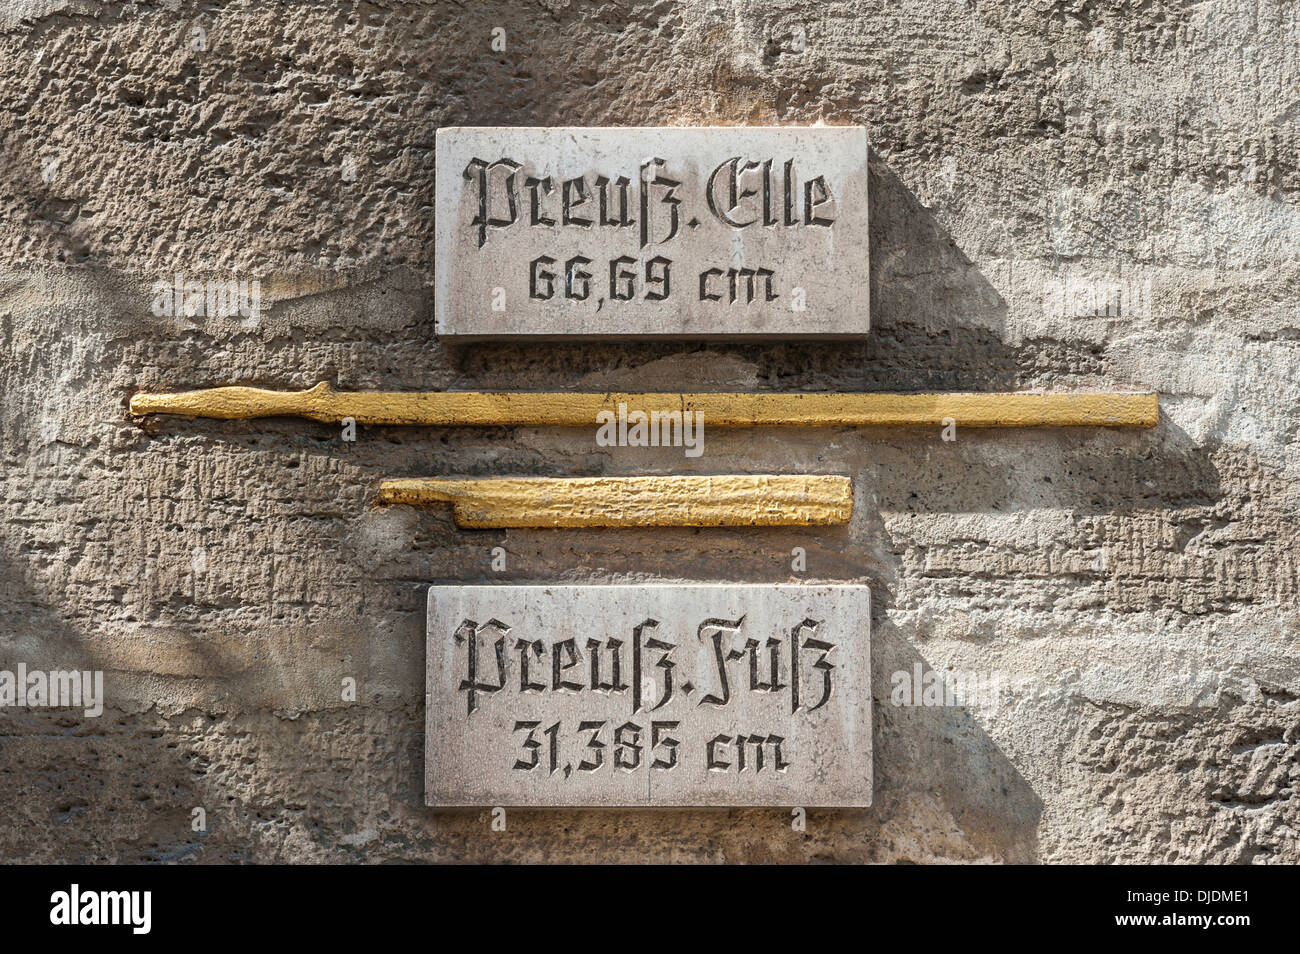 Historical measures of length at the Town Hall, gilded with explanatory panels, Bad Langensalza, Thuringia, Germany - Stock Image